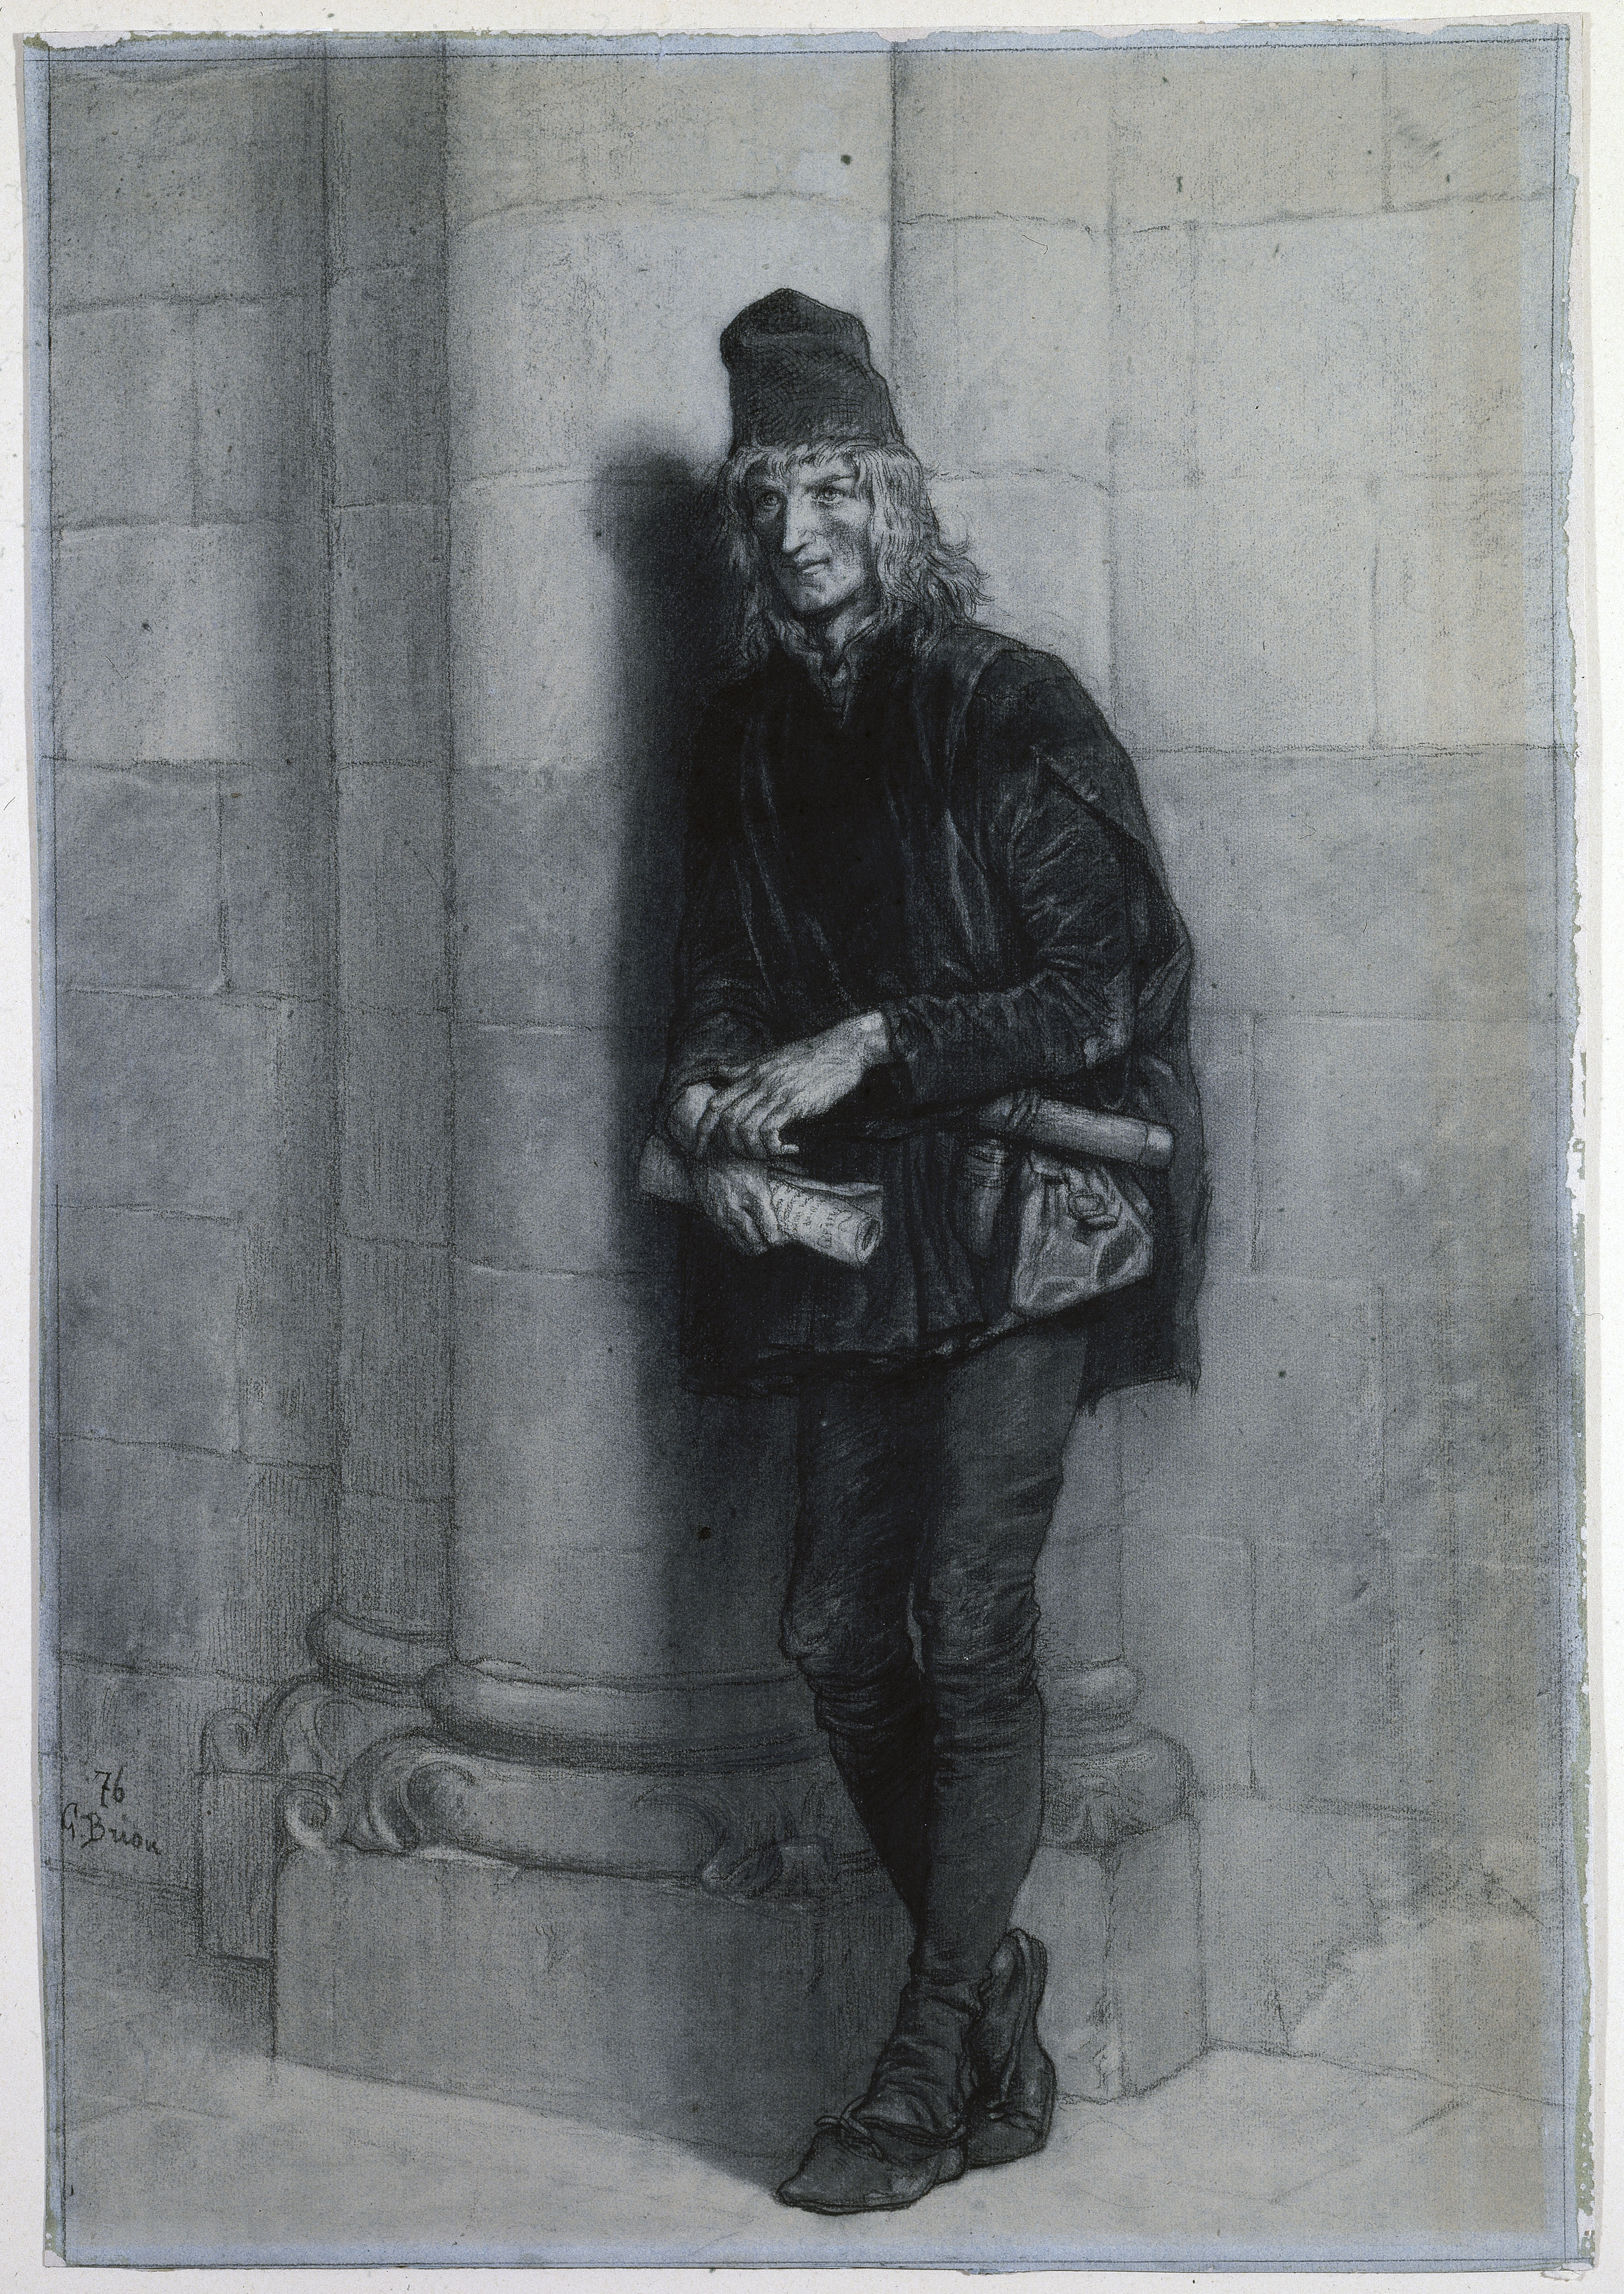 Pierre Gringoire. Illustration by [[Gustave Brion